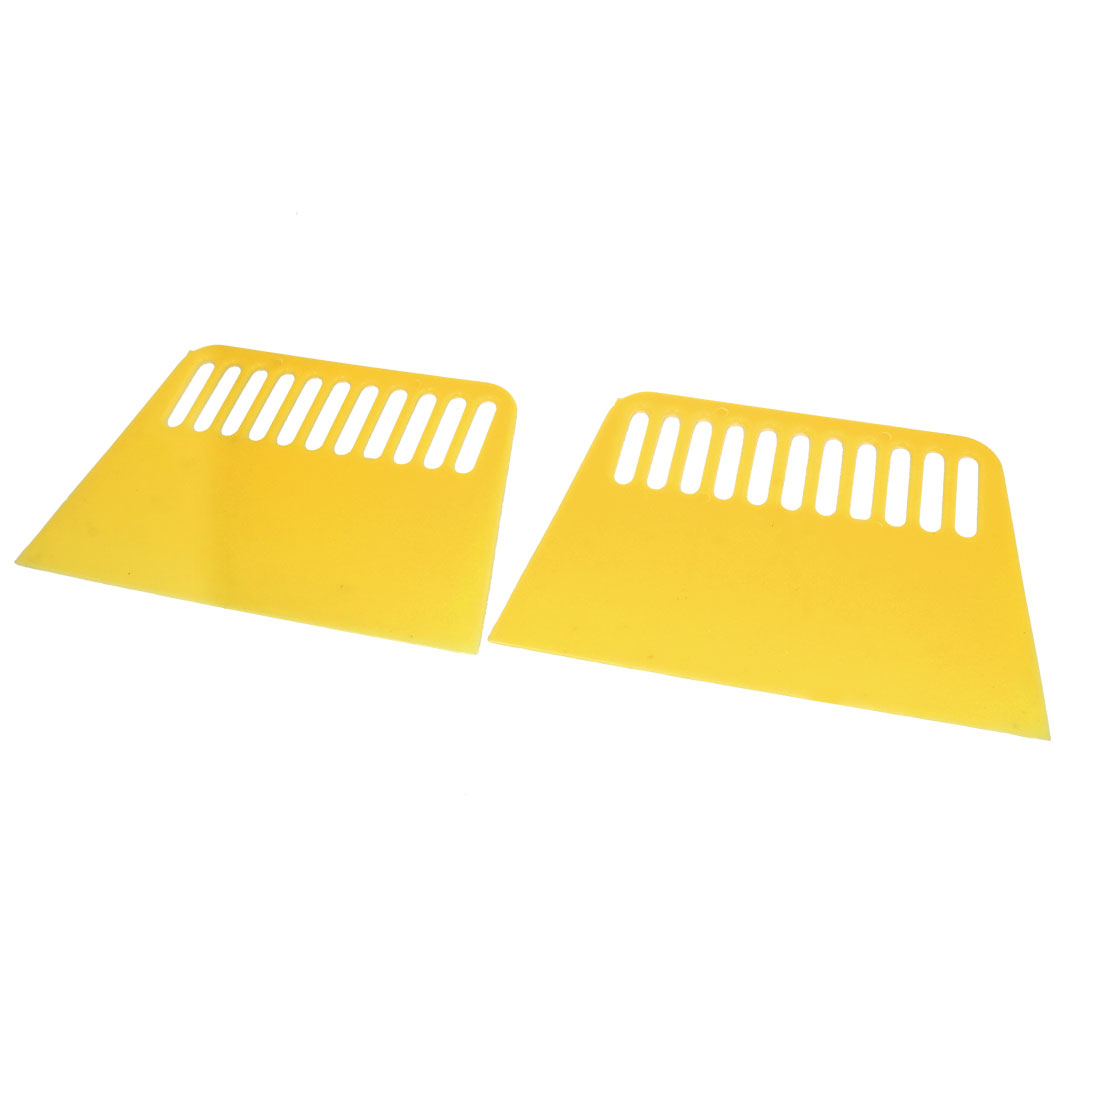 "2pcs 5"" Wide Trapezoid Plastic Varnish Paint Remover Wallpaper Putty Scraper Light Yellow"